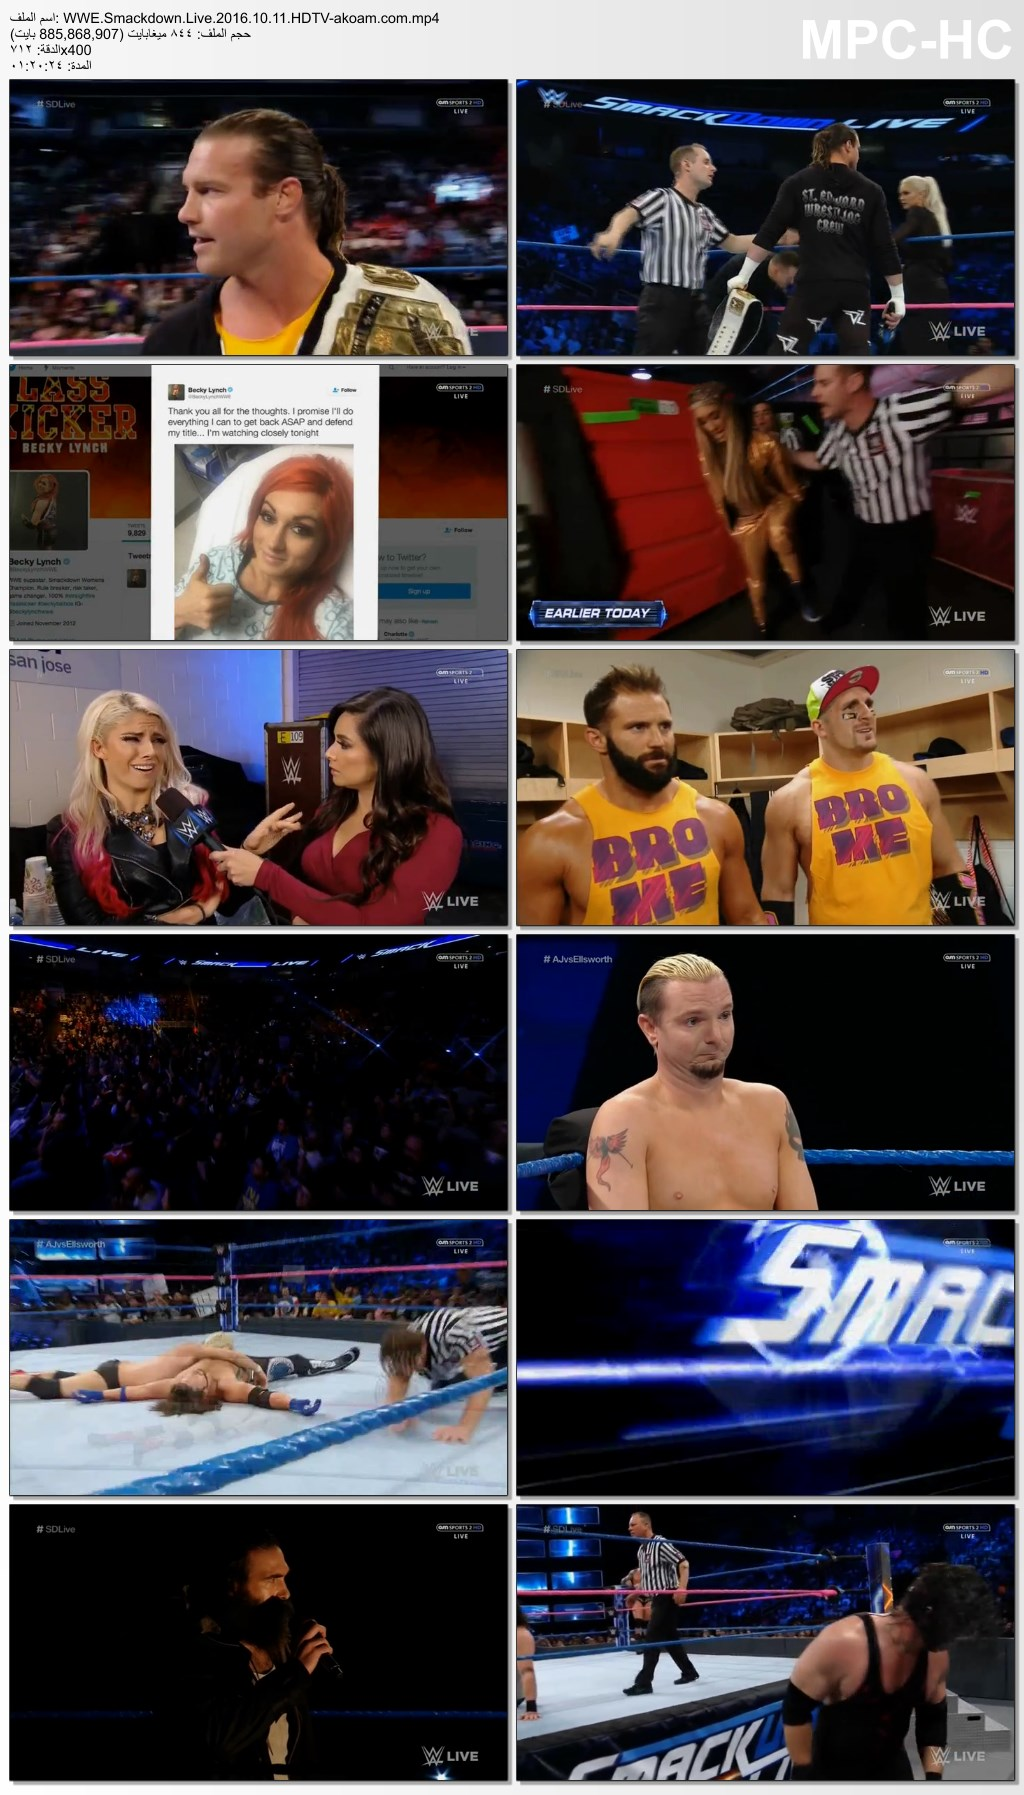 WWE,Smackdown,WWE Smackdown Live